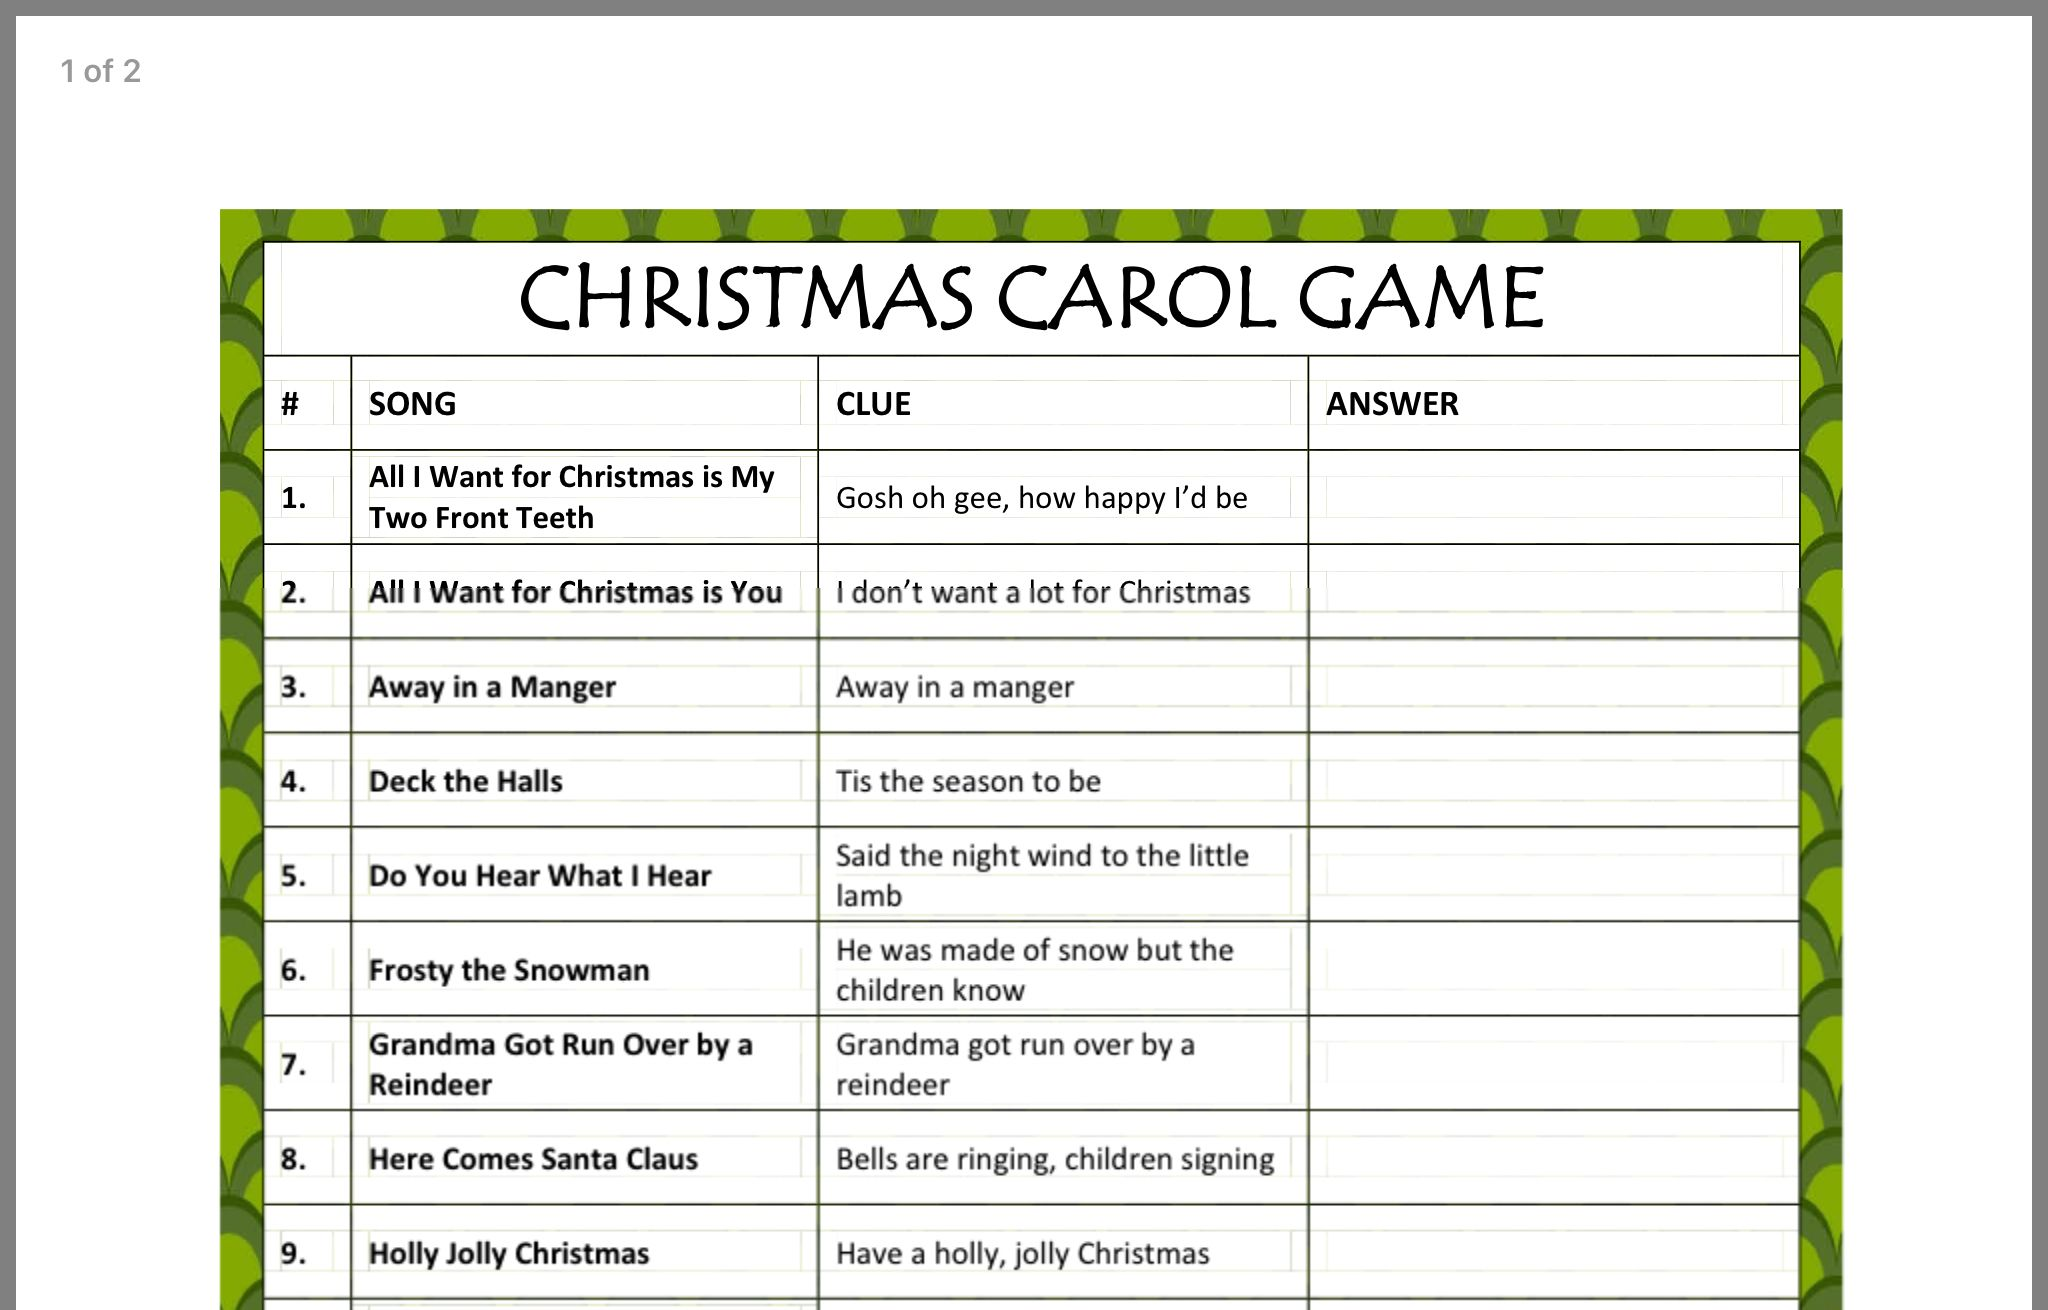 Pin by Teresa Michael on Christmas (With images) | Christmas carol game, Christmas carol ...